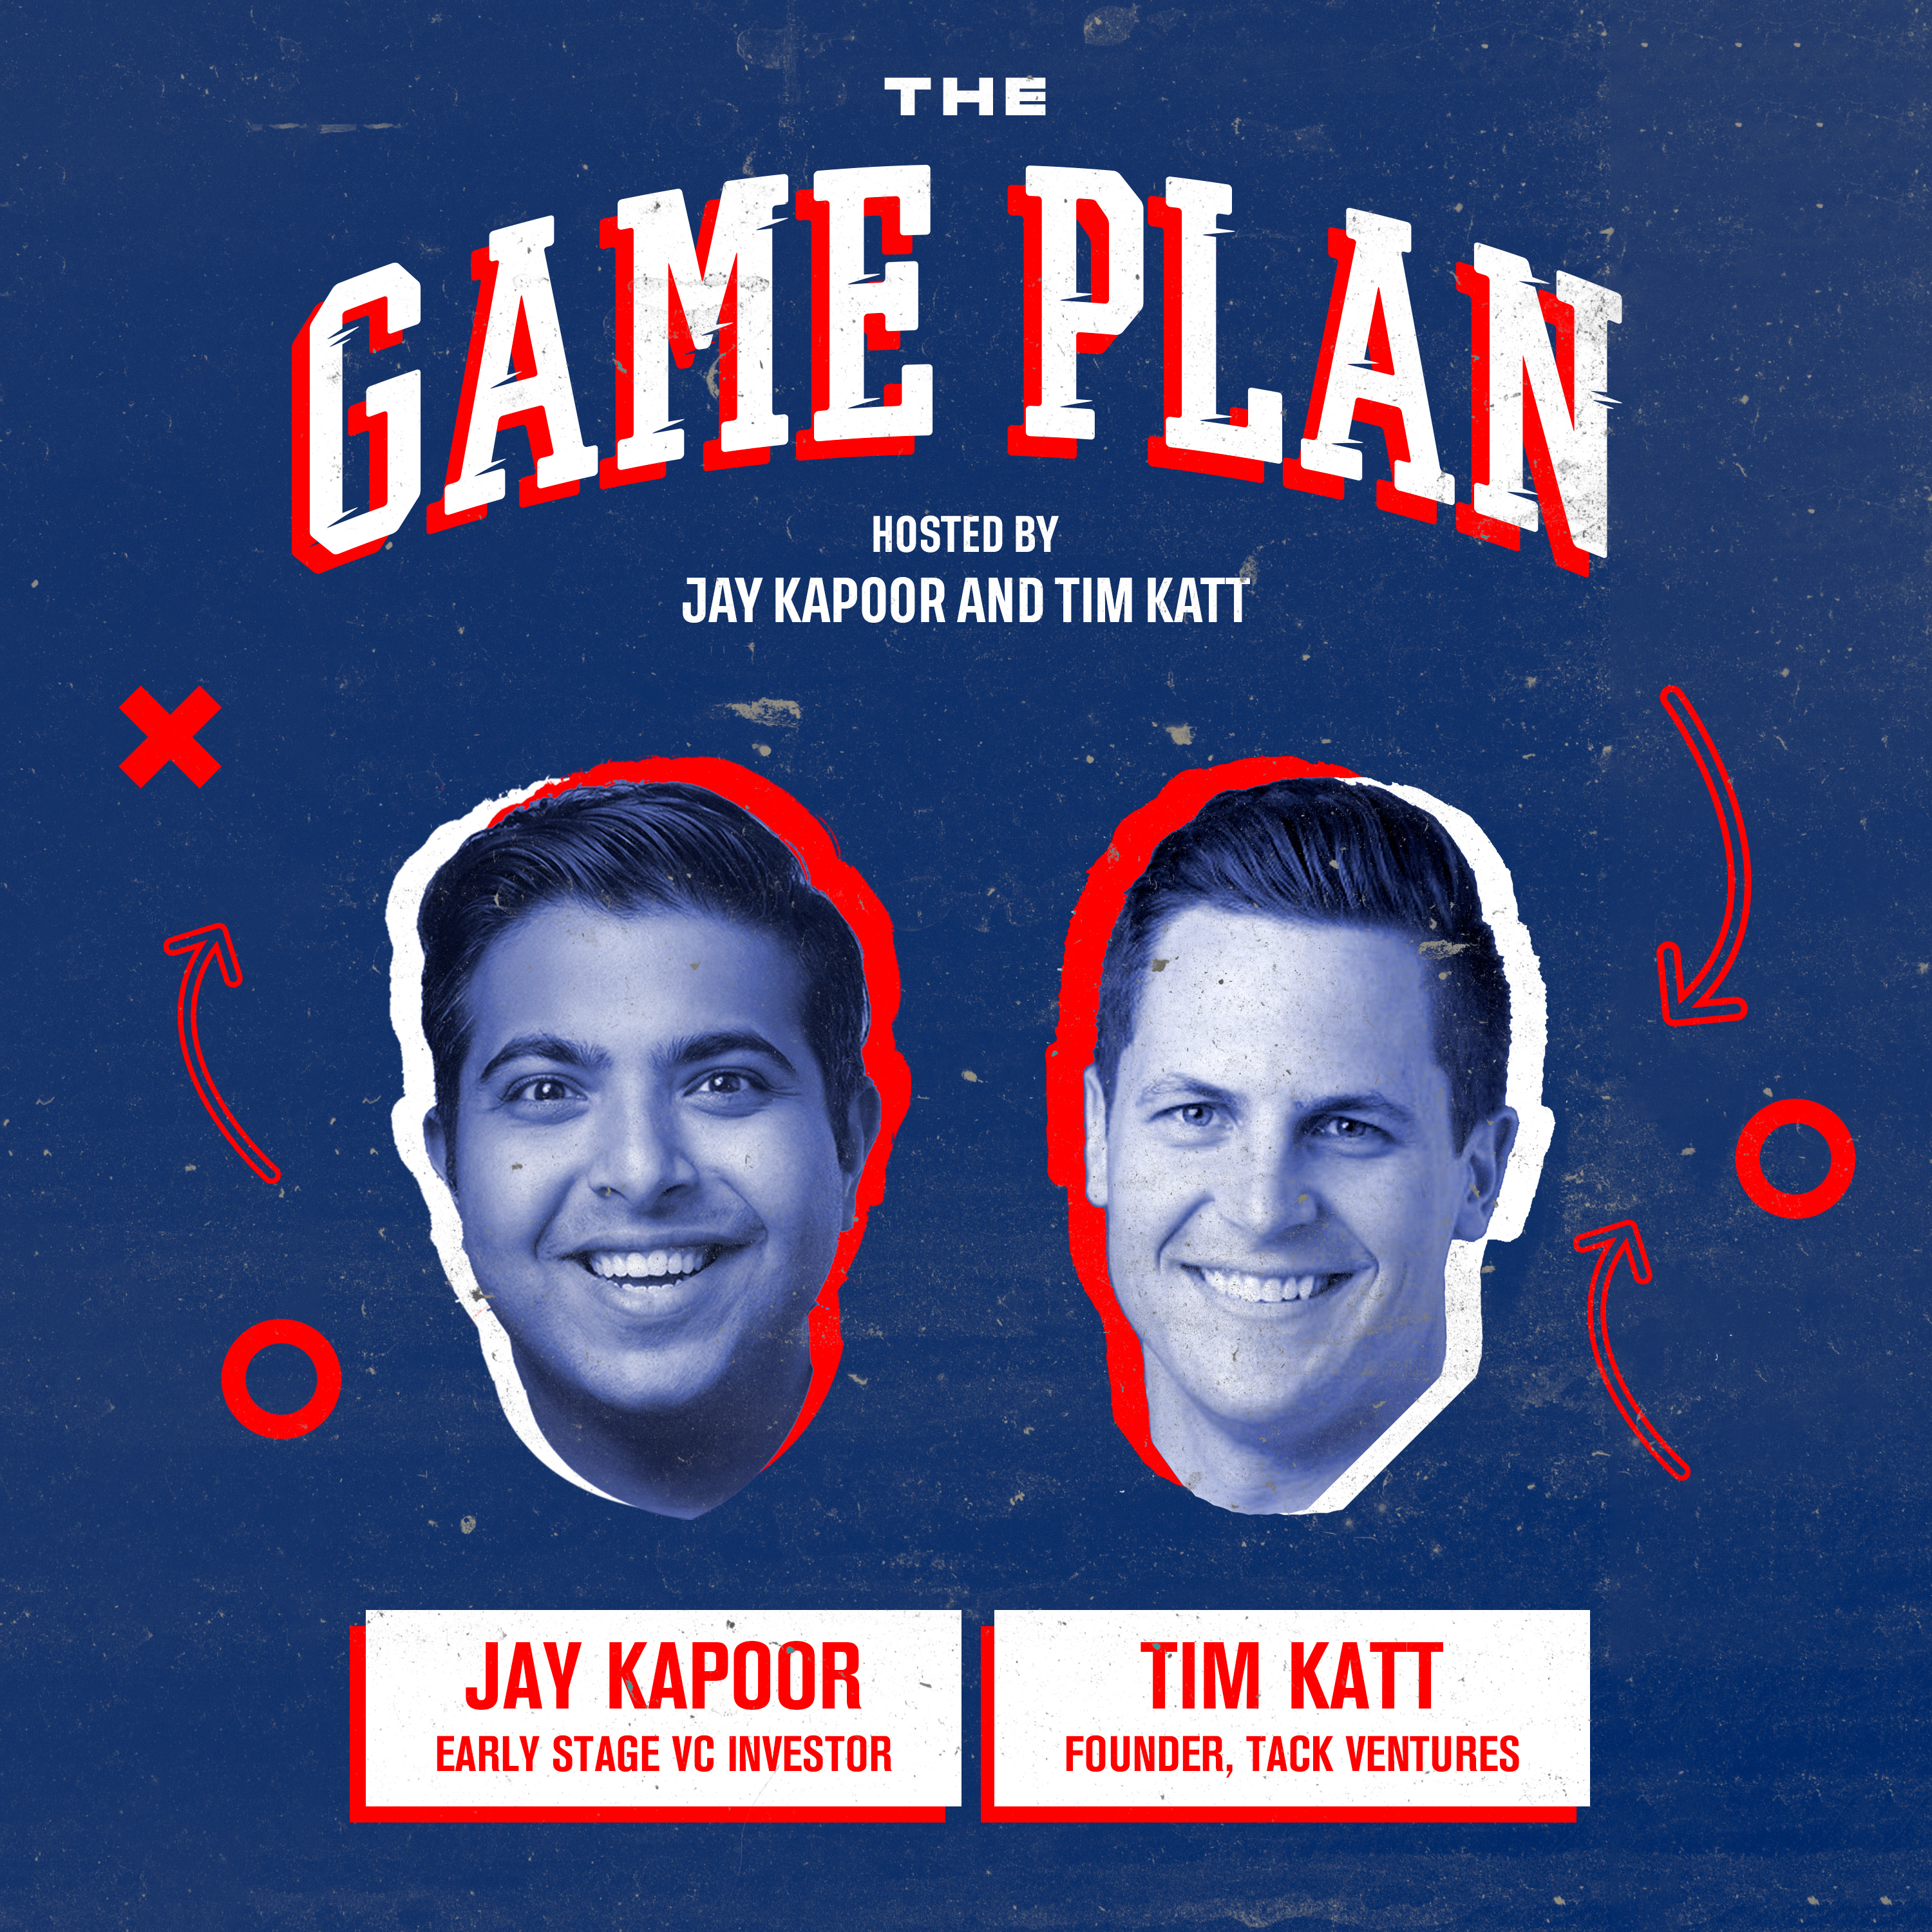 What's The Game Plan? Image